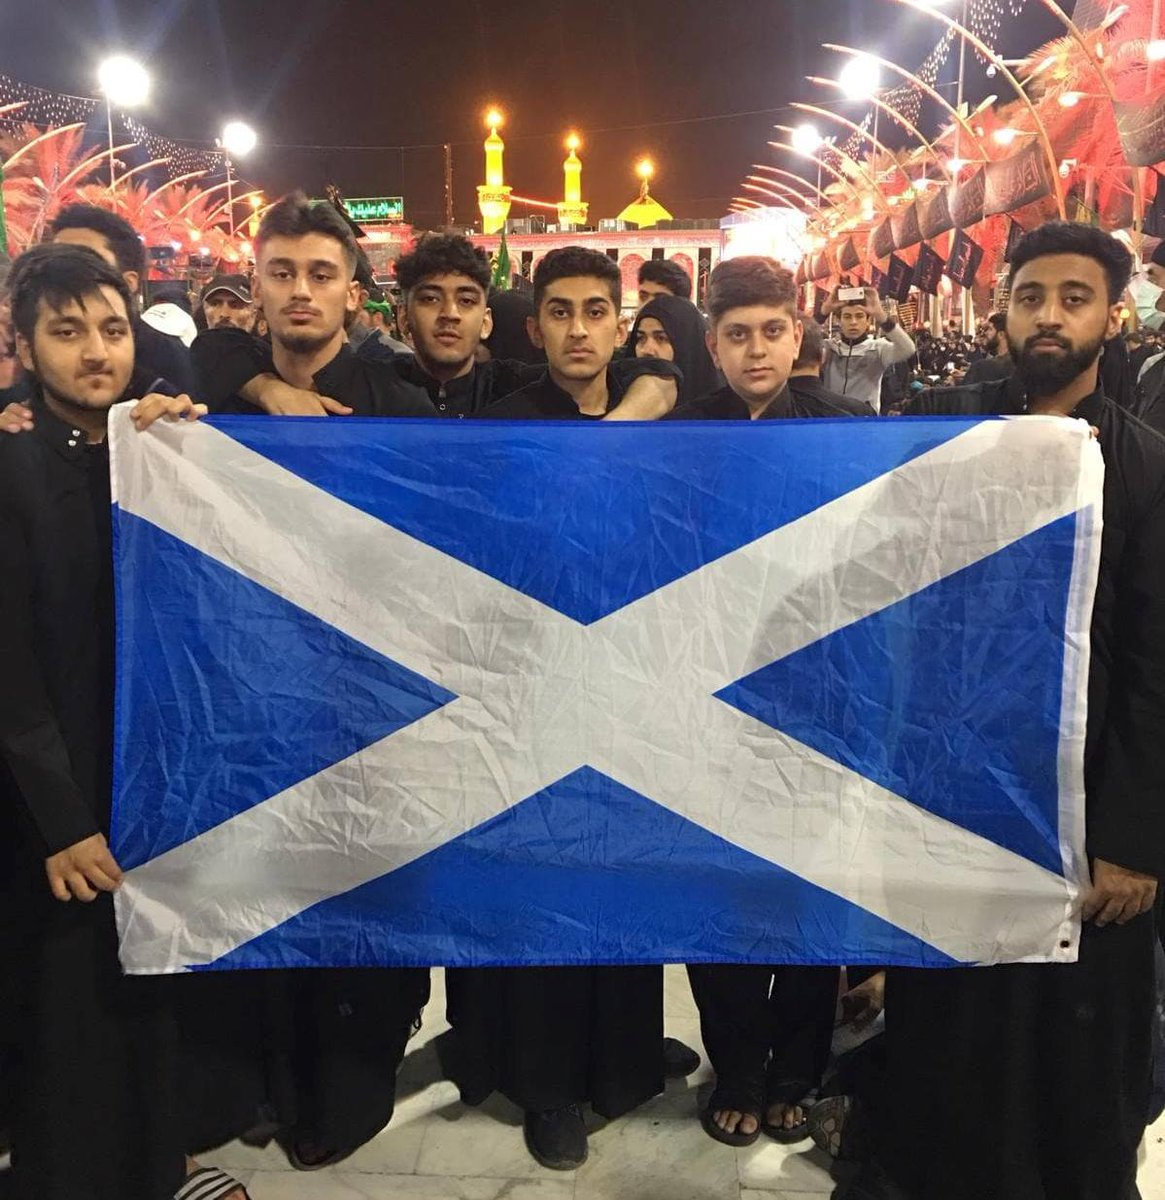 InterfaithScot photo